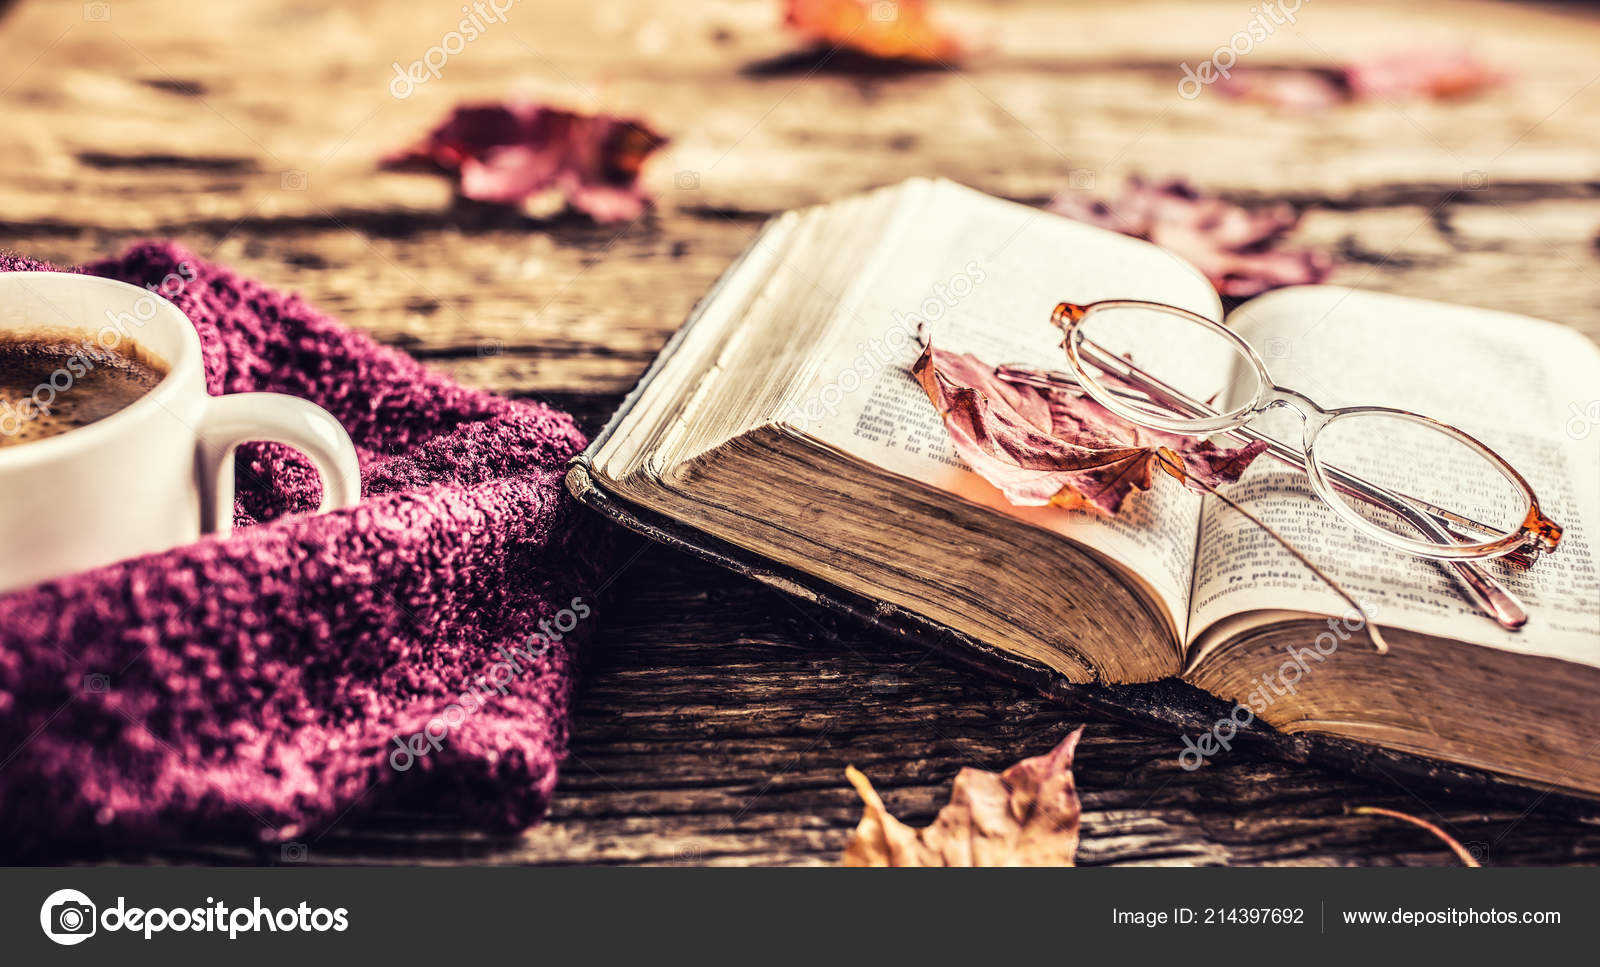 Cup Coffee Old Book Glasses Autumn Leaves Rustic Wooden Table Stock Photo By C Weyo 214397692 Wallpaper tea cup book garlands leaves